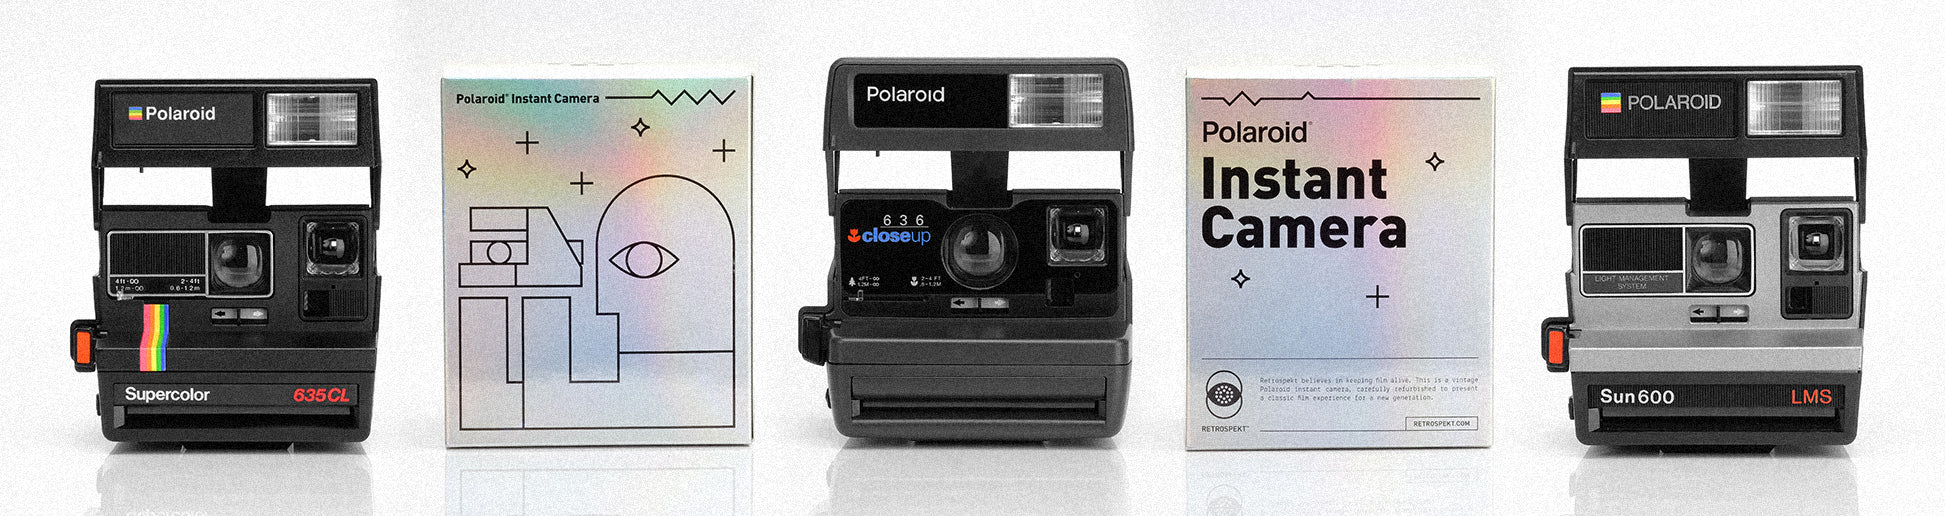 Packaged Cameras